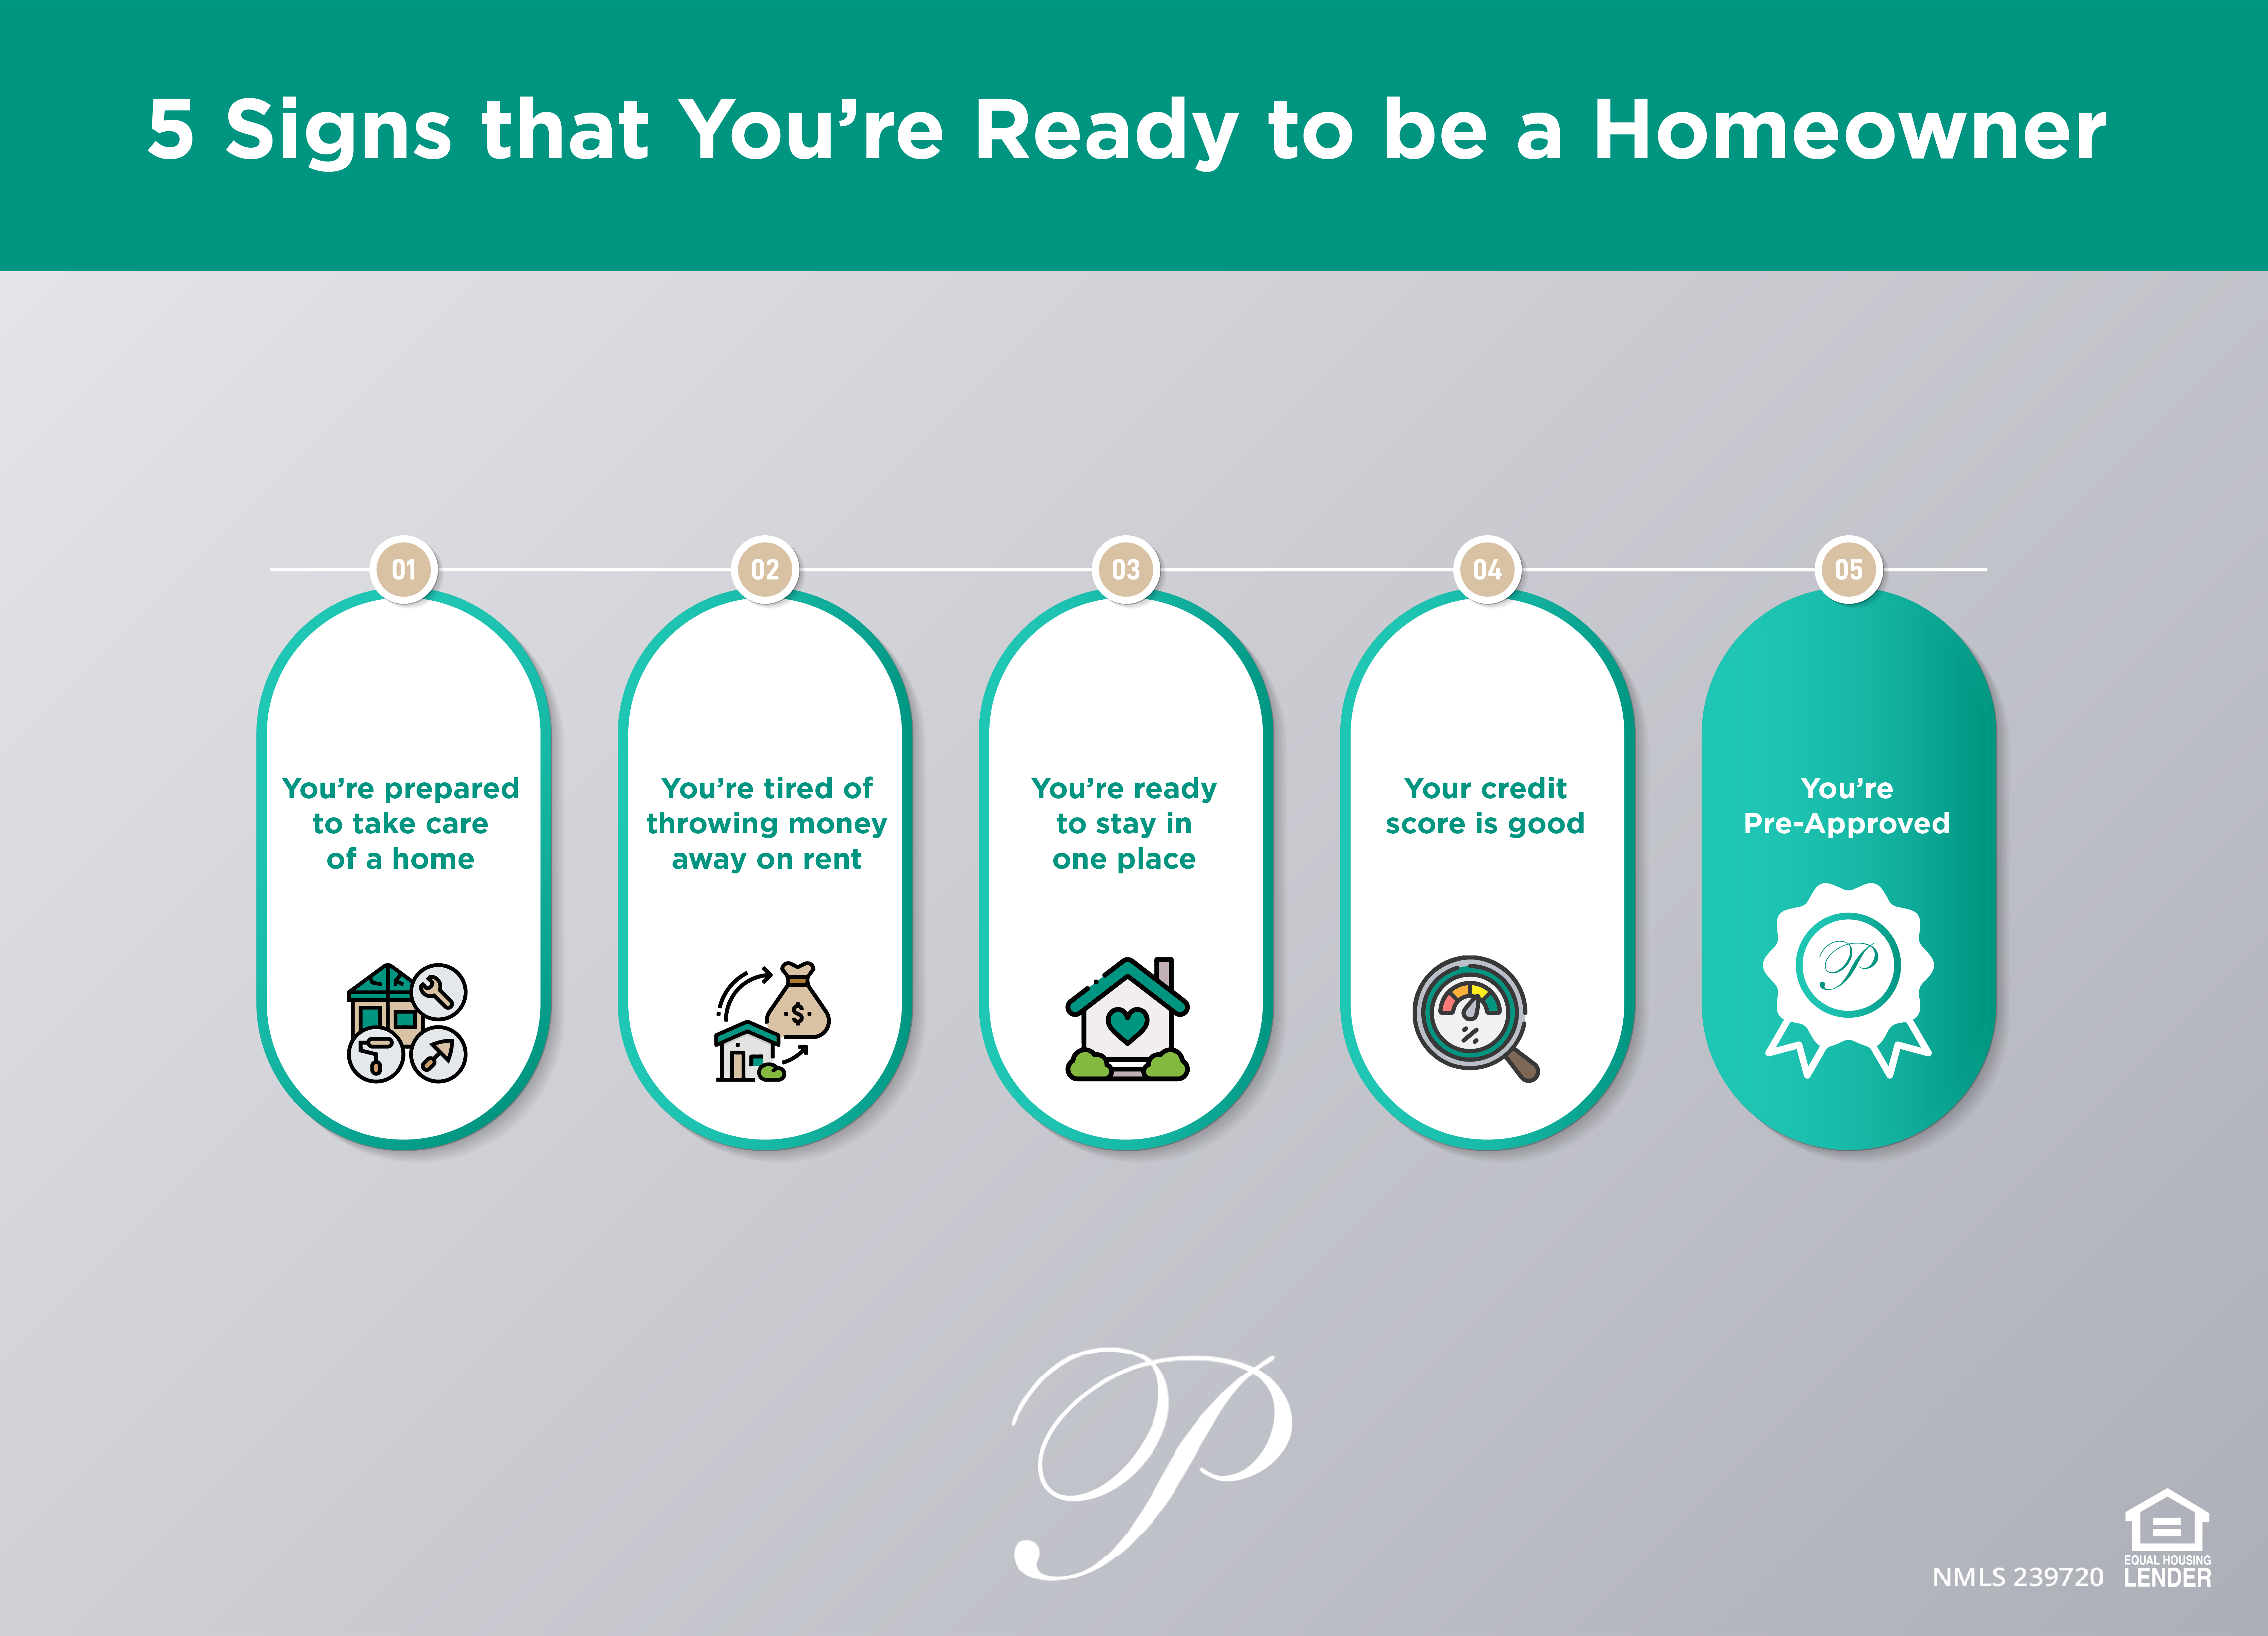 5 Signs You're Ready to be a Homeowner infographic.